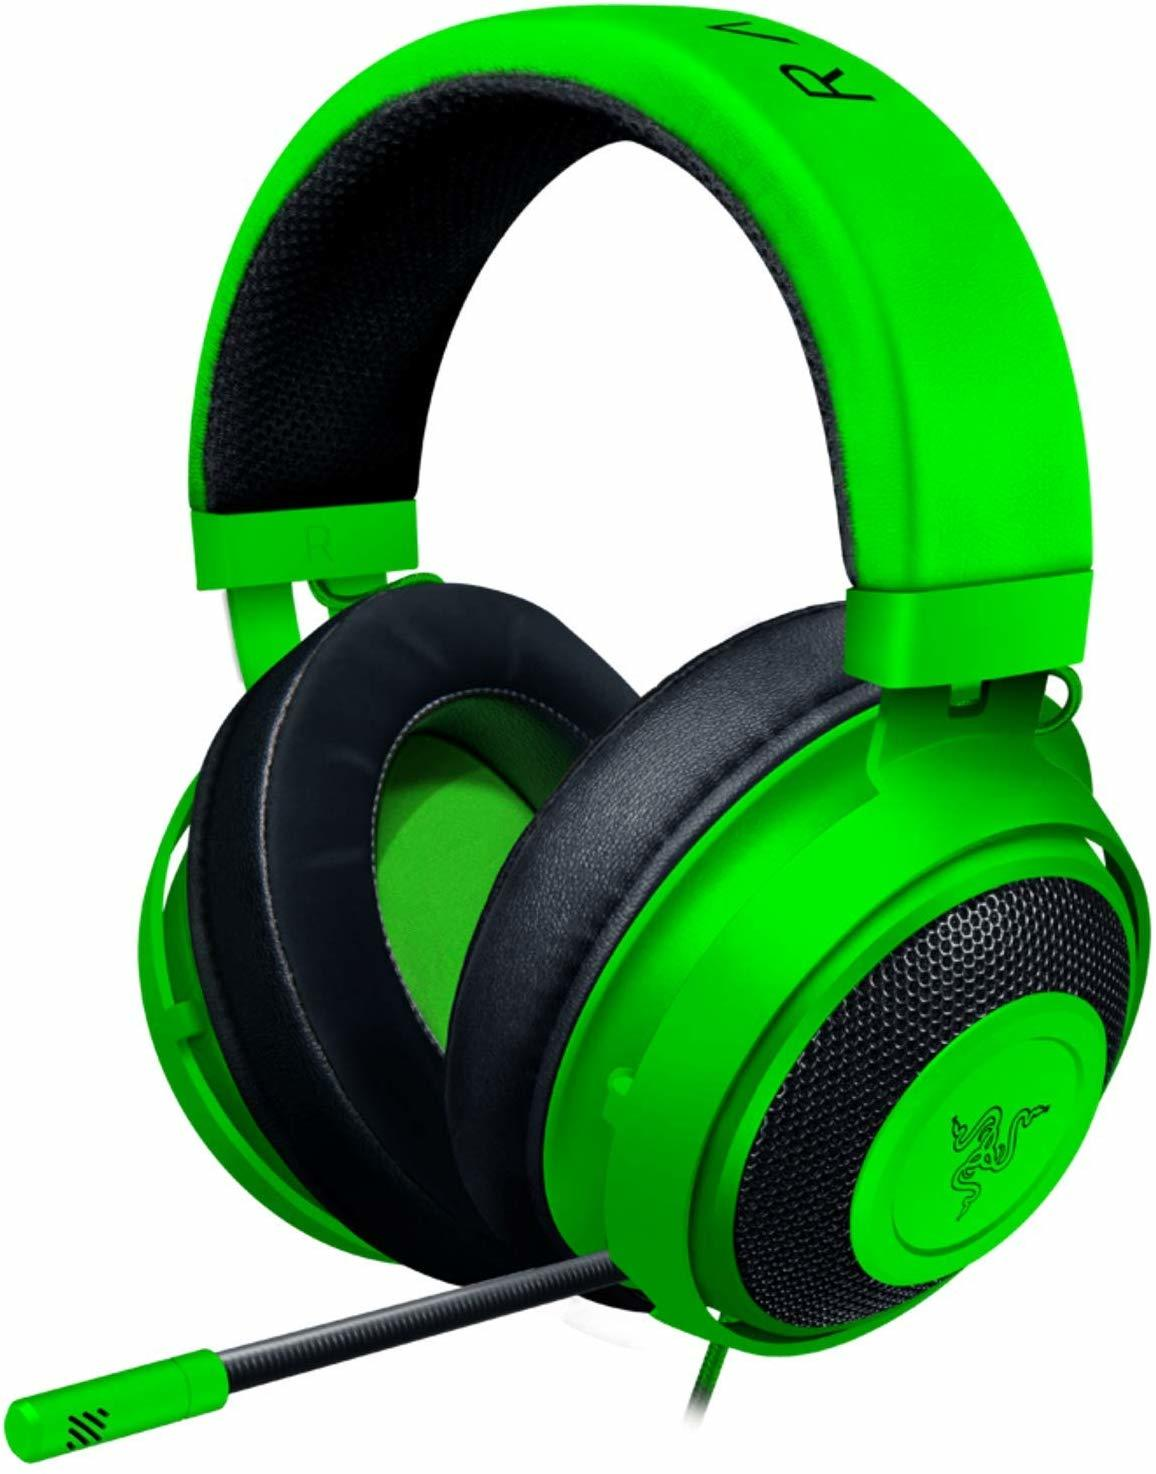 Razer Kraken Multi Platform Gaming Headset (Green) - Xbox One